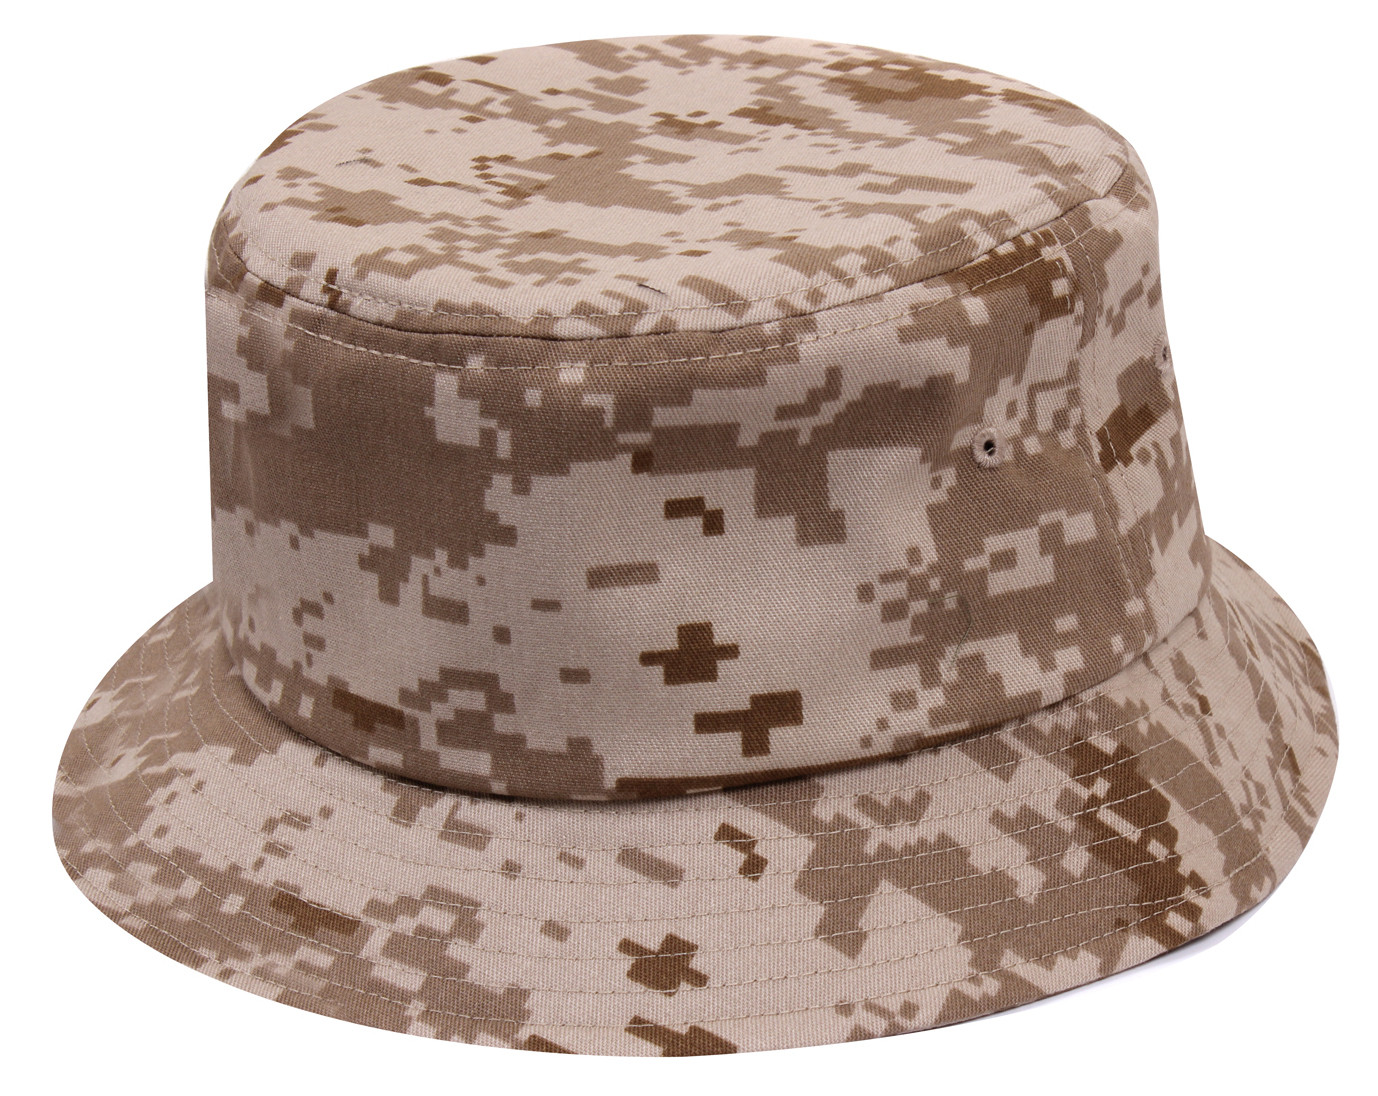 37bb4271aa4f1 ... Desert Digital Camouflage Military Classic Bucket Hat ...